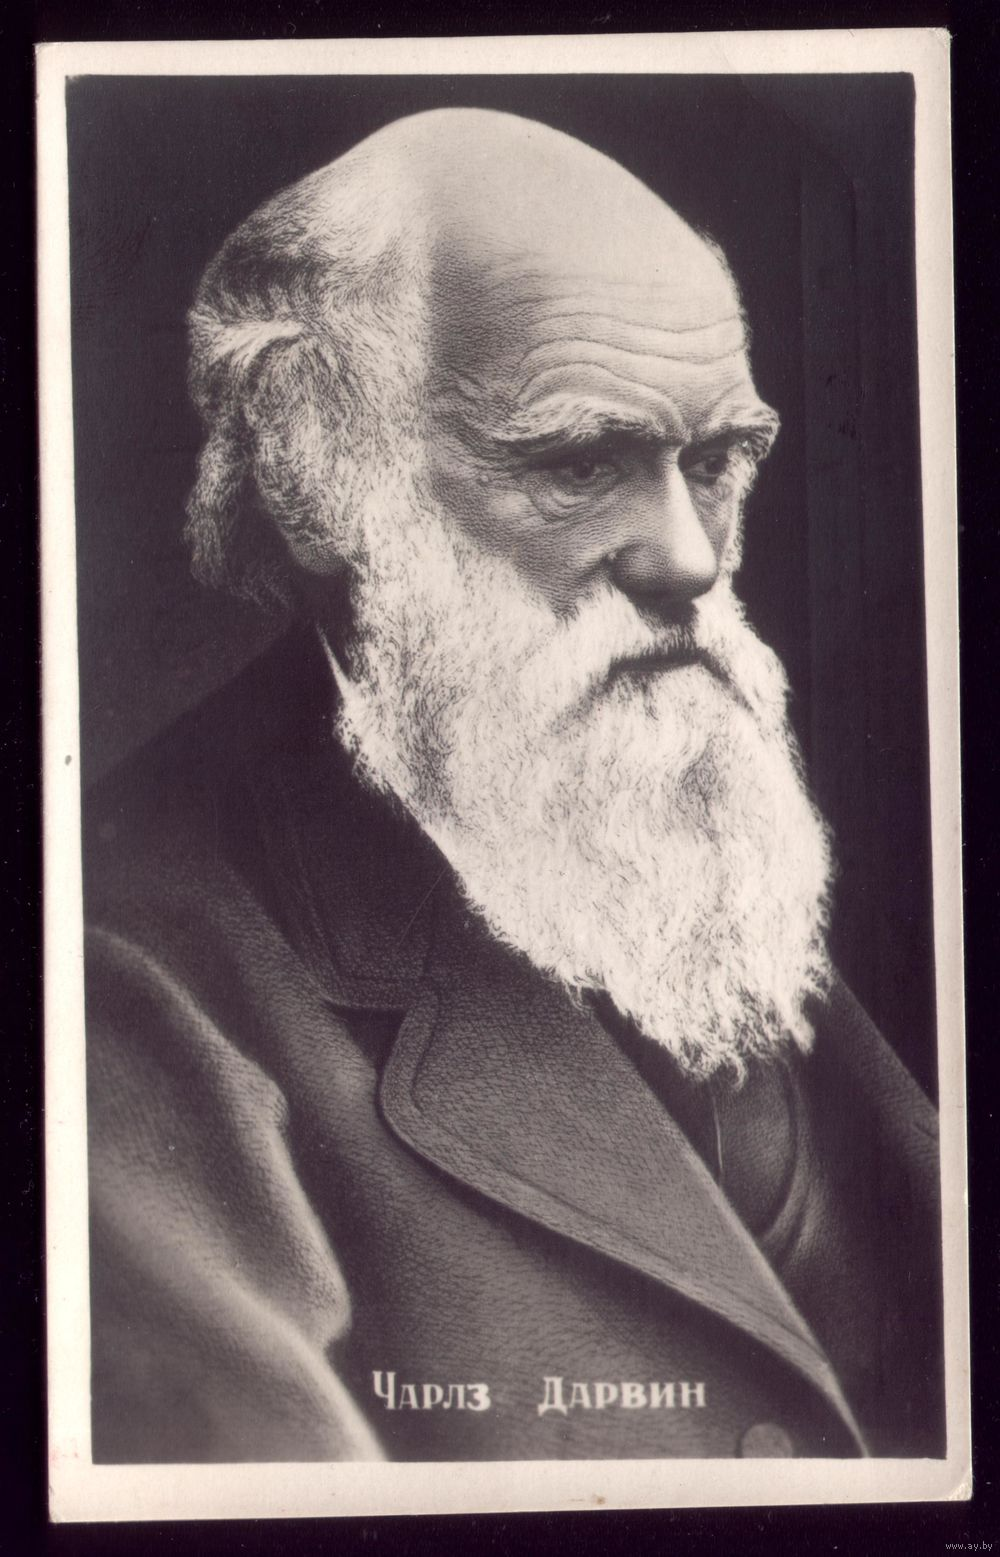 On the origin of species, Charles Darwin - m Charles darwin evolution pictures